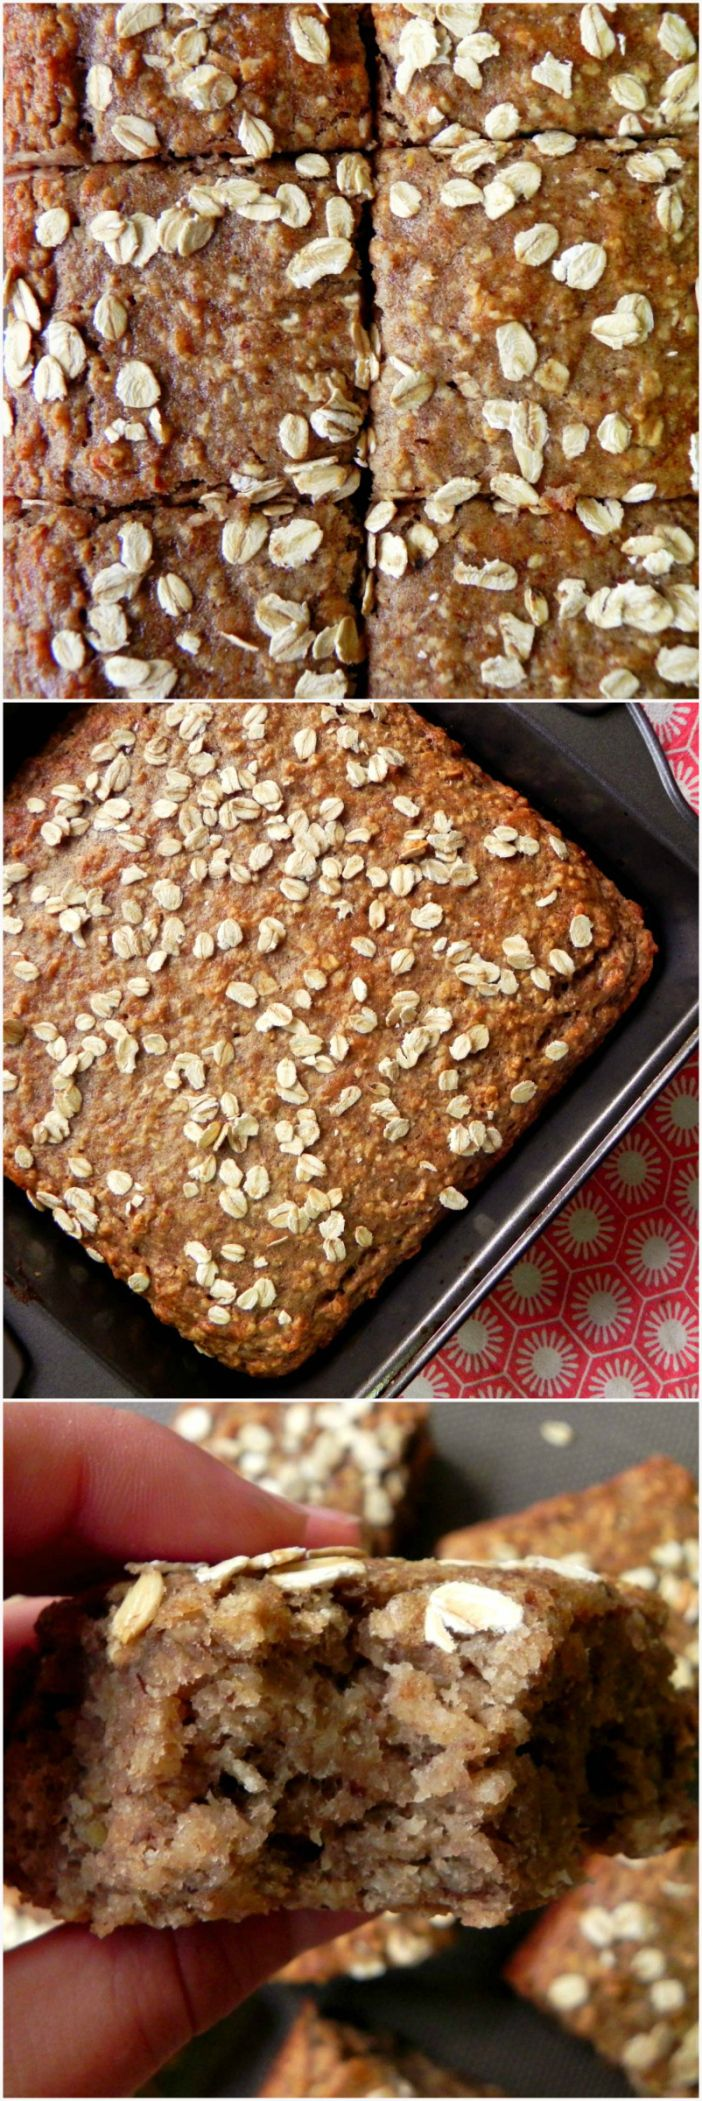 Banana & Oat Breakfast Cake with FIVE whole bananas! #HEALTHY #VEGAN Vegan Oatmeal Banana Bread! - Ceara's Kitchen